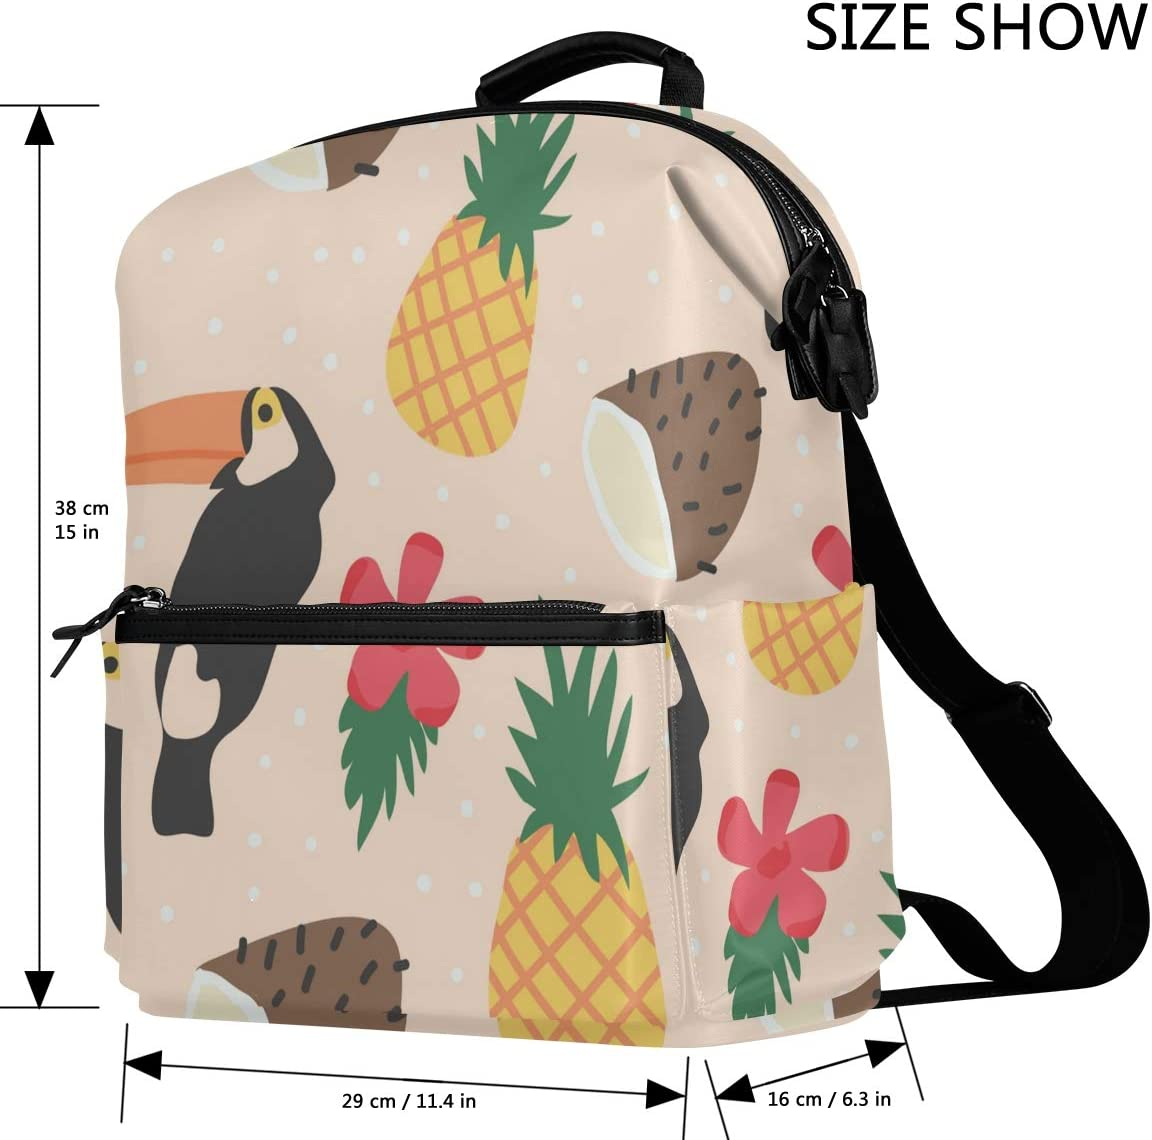 Business College School Adjustable Straps for Unisex Adult Travel Backpack Laptop Bag Tropical Fresh Pattern with Bird and Fruit Fits for Computer Notebook Tablet Under 14 inch